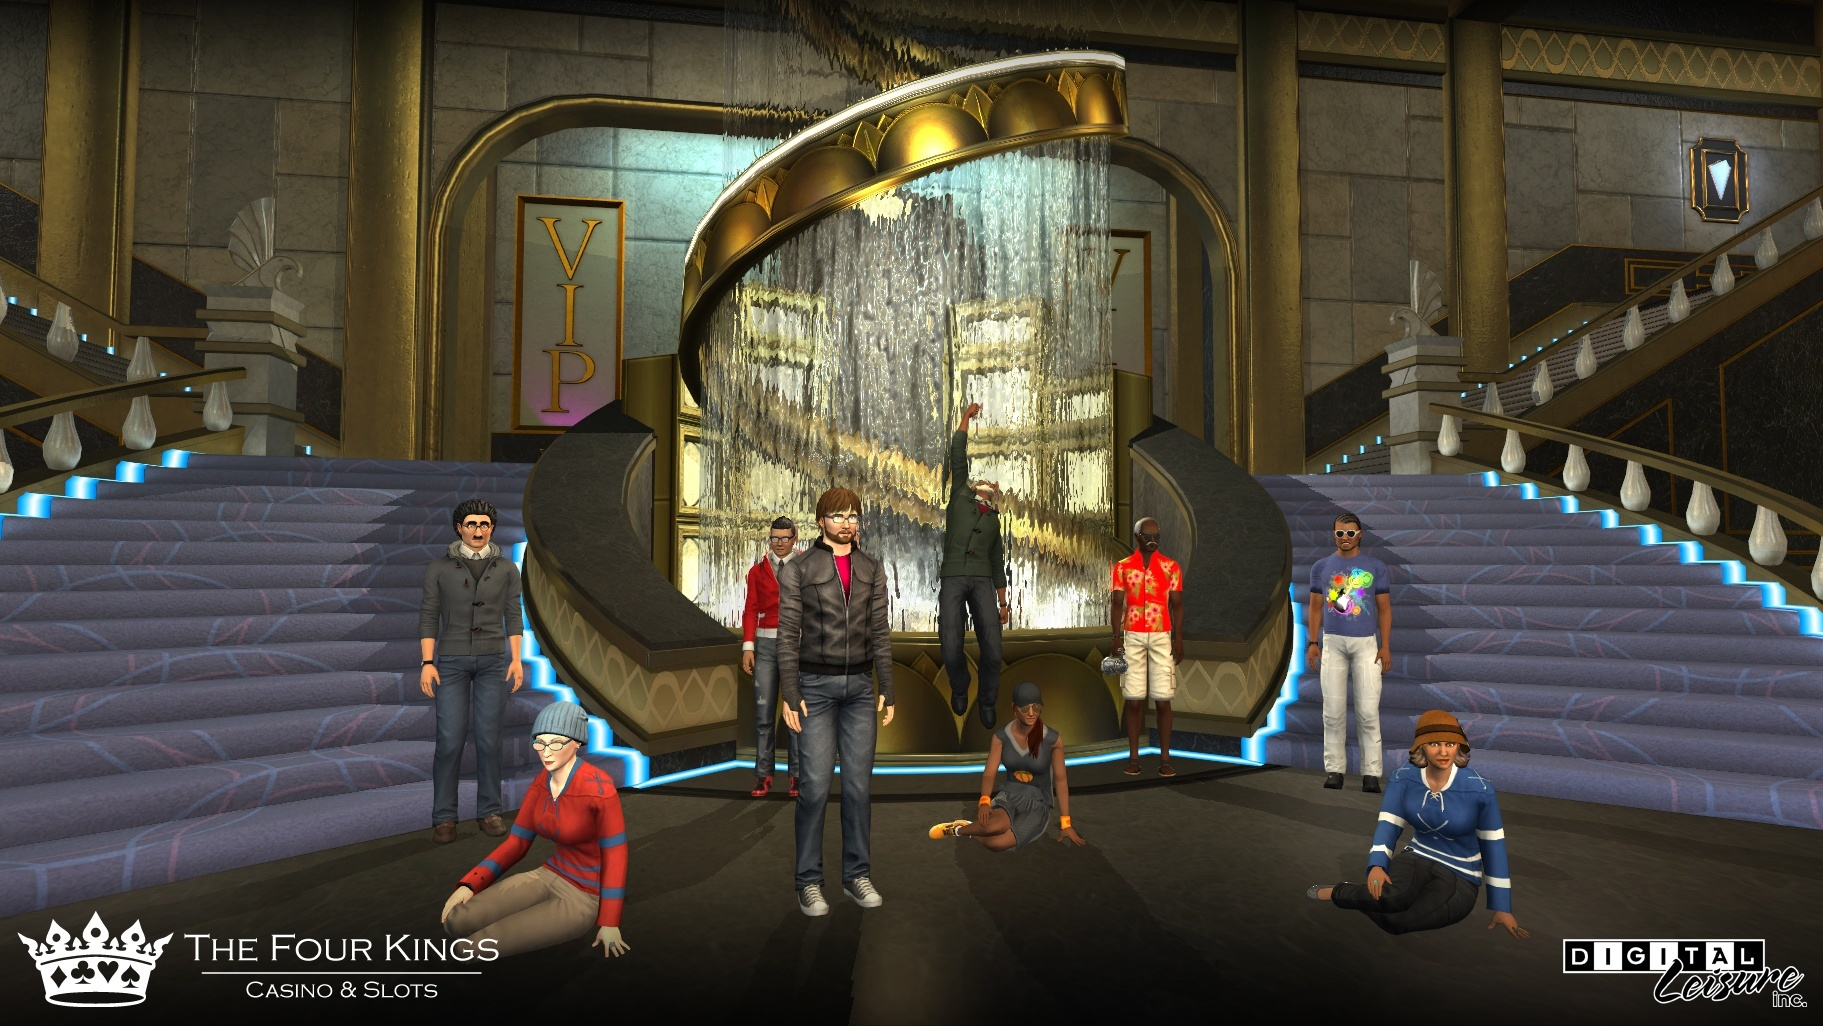 News About Digital Leisure's Four Kings Casino, kwoman32, Mar 16, 2015, 6:54 PM, YourPSHome.net, jpg, ss6_Fountain.jpg